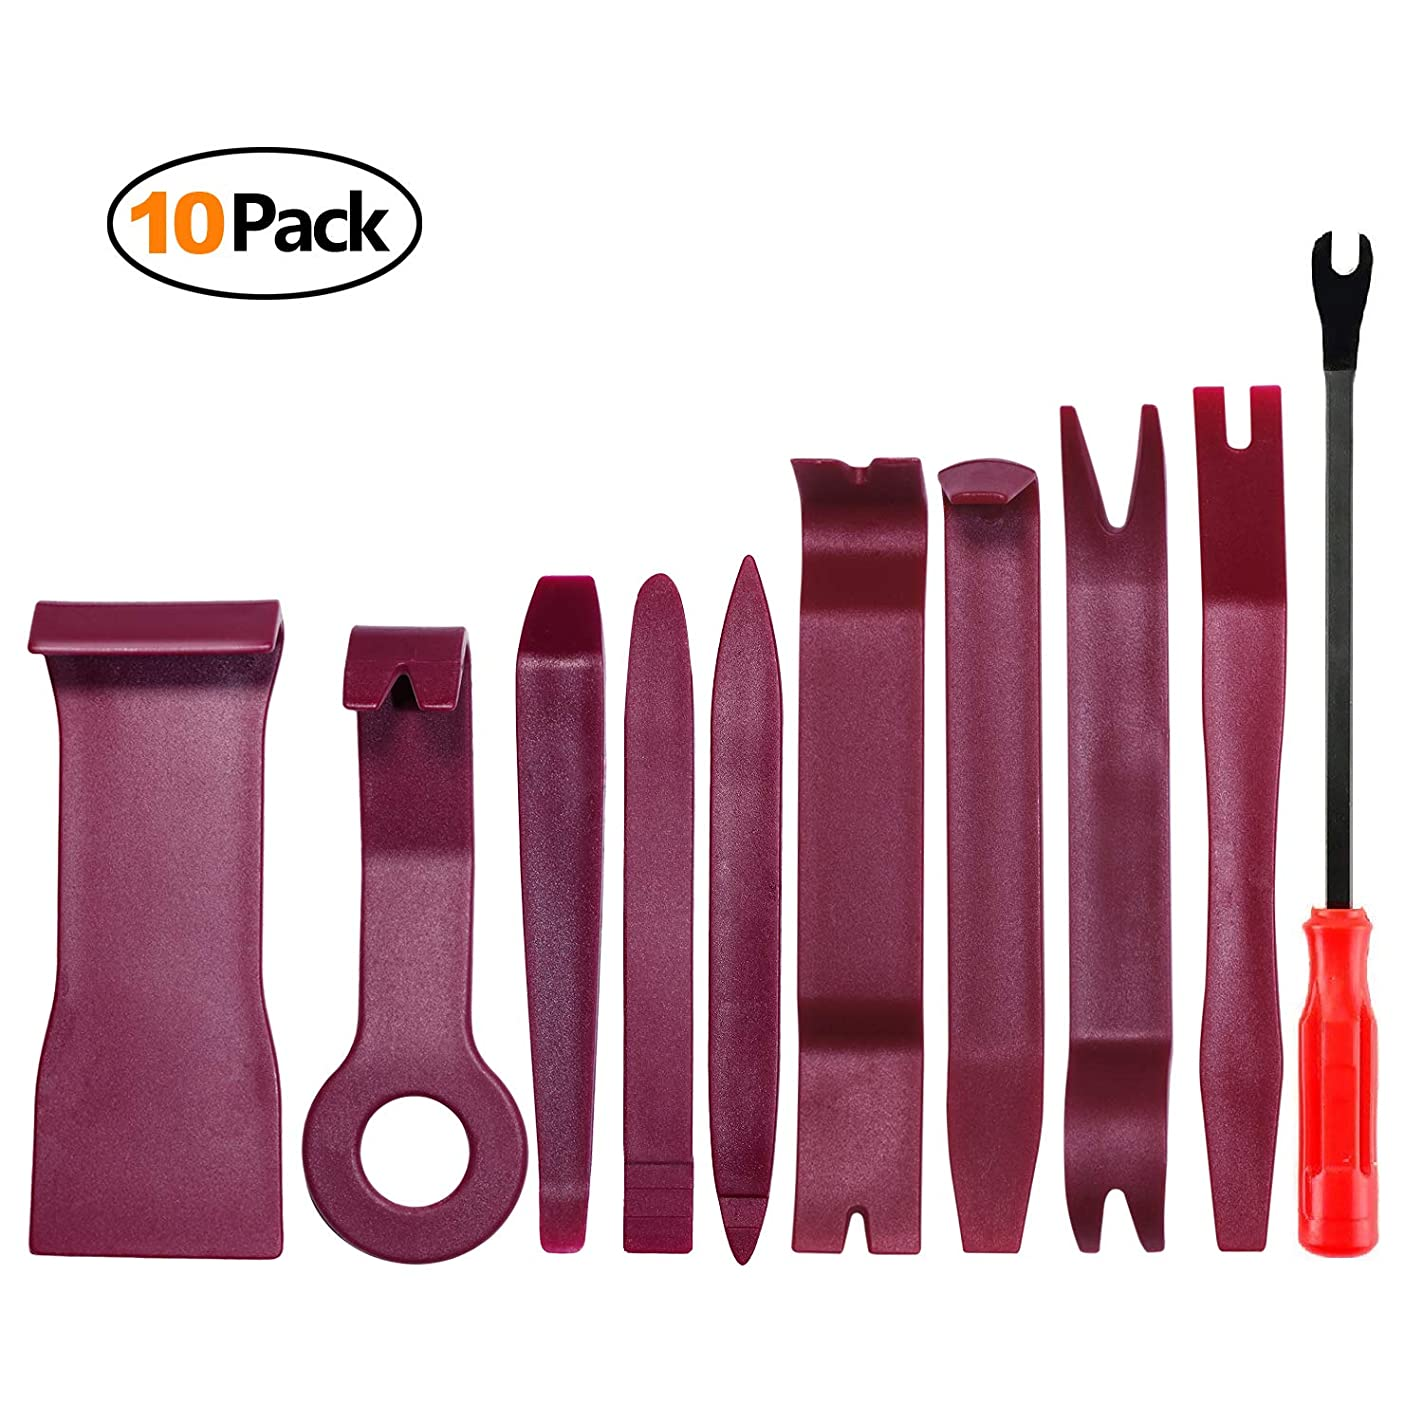 Auto Trim Removal Tool Kit for Car Door Clip Panel Audio Video Dashboard, Set of 10Pcs